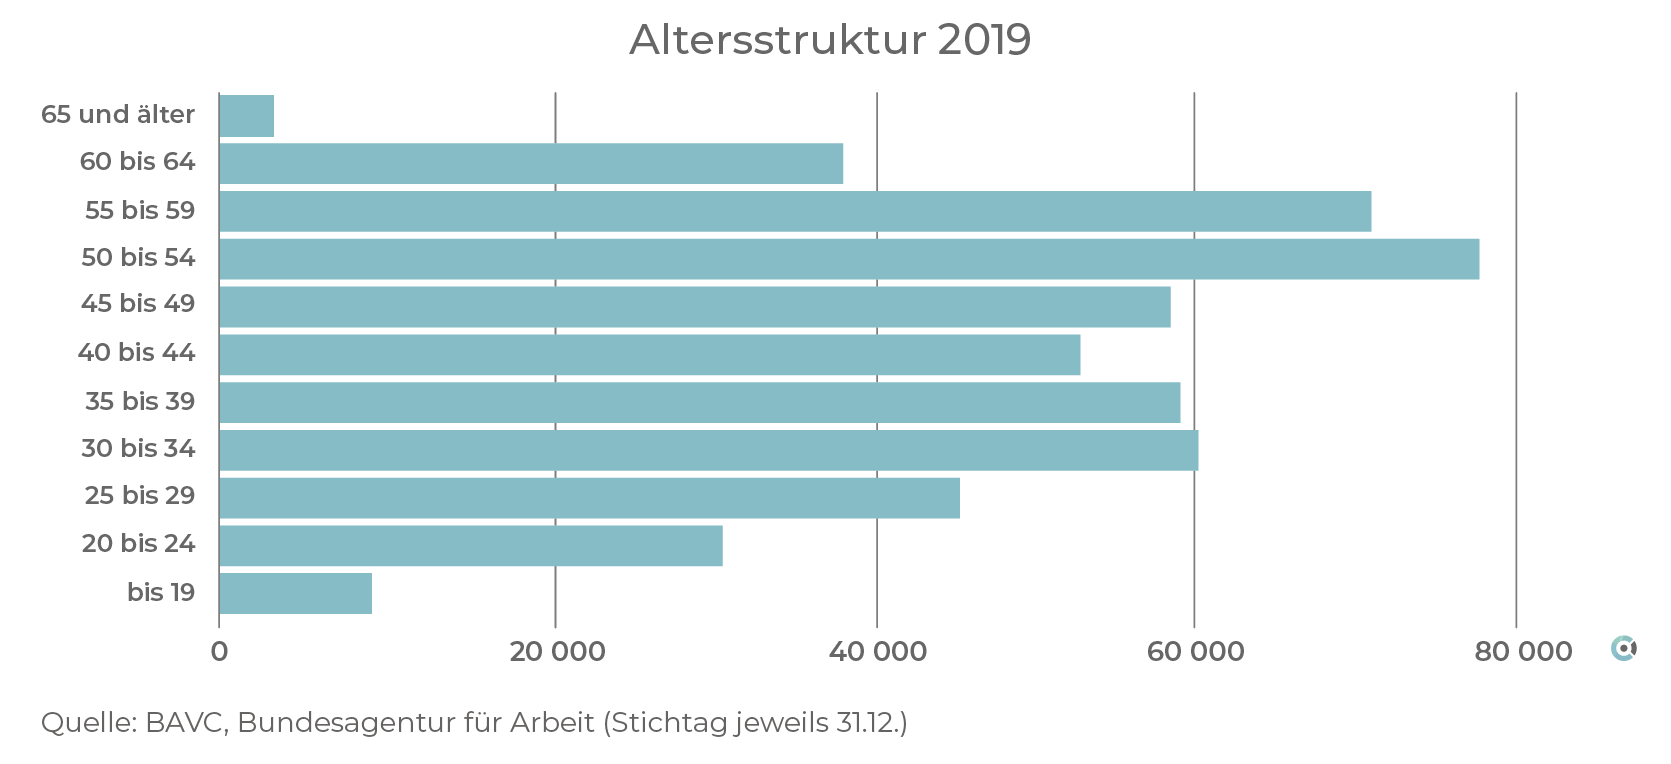 Altersstruktur2019